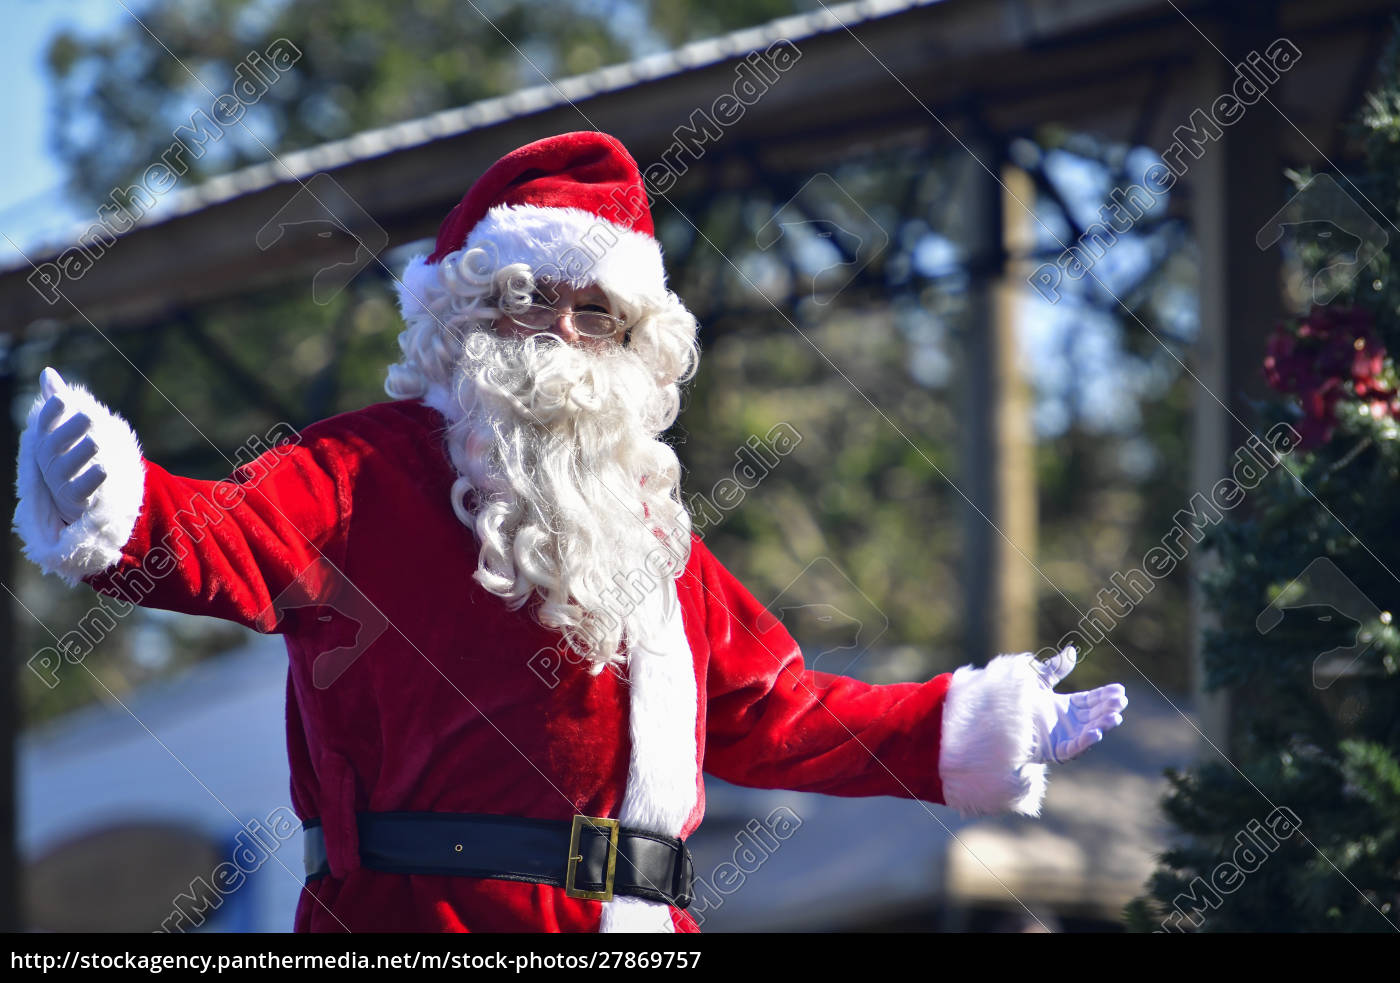 santa, claus, welcomes, with, open, arms - 27869757